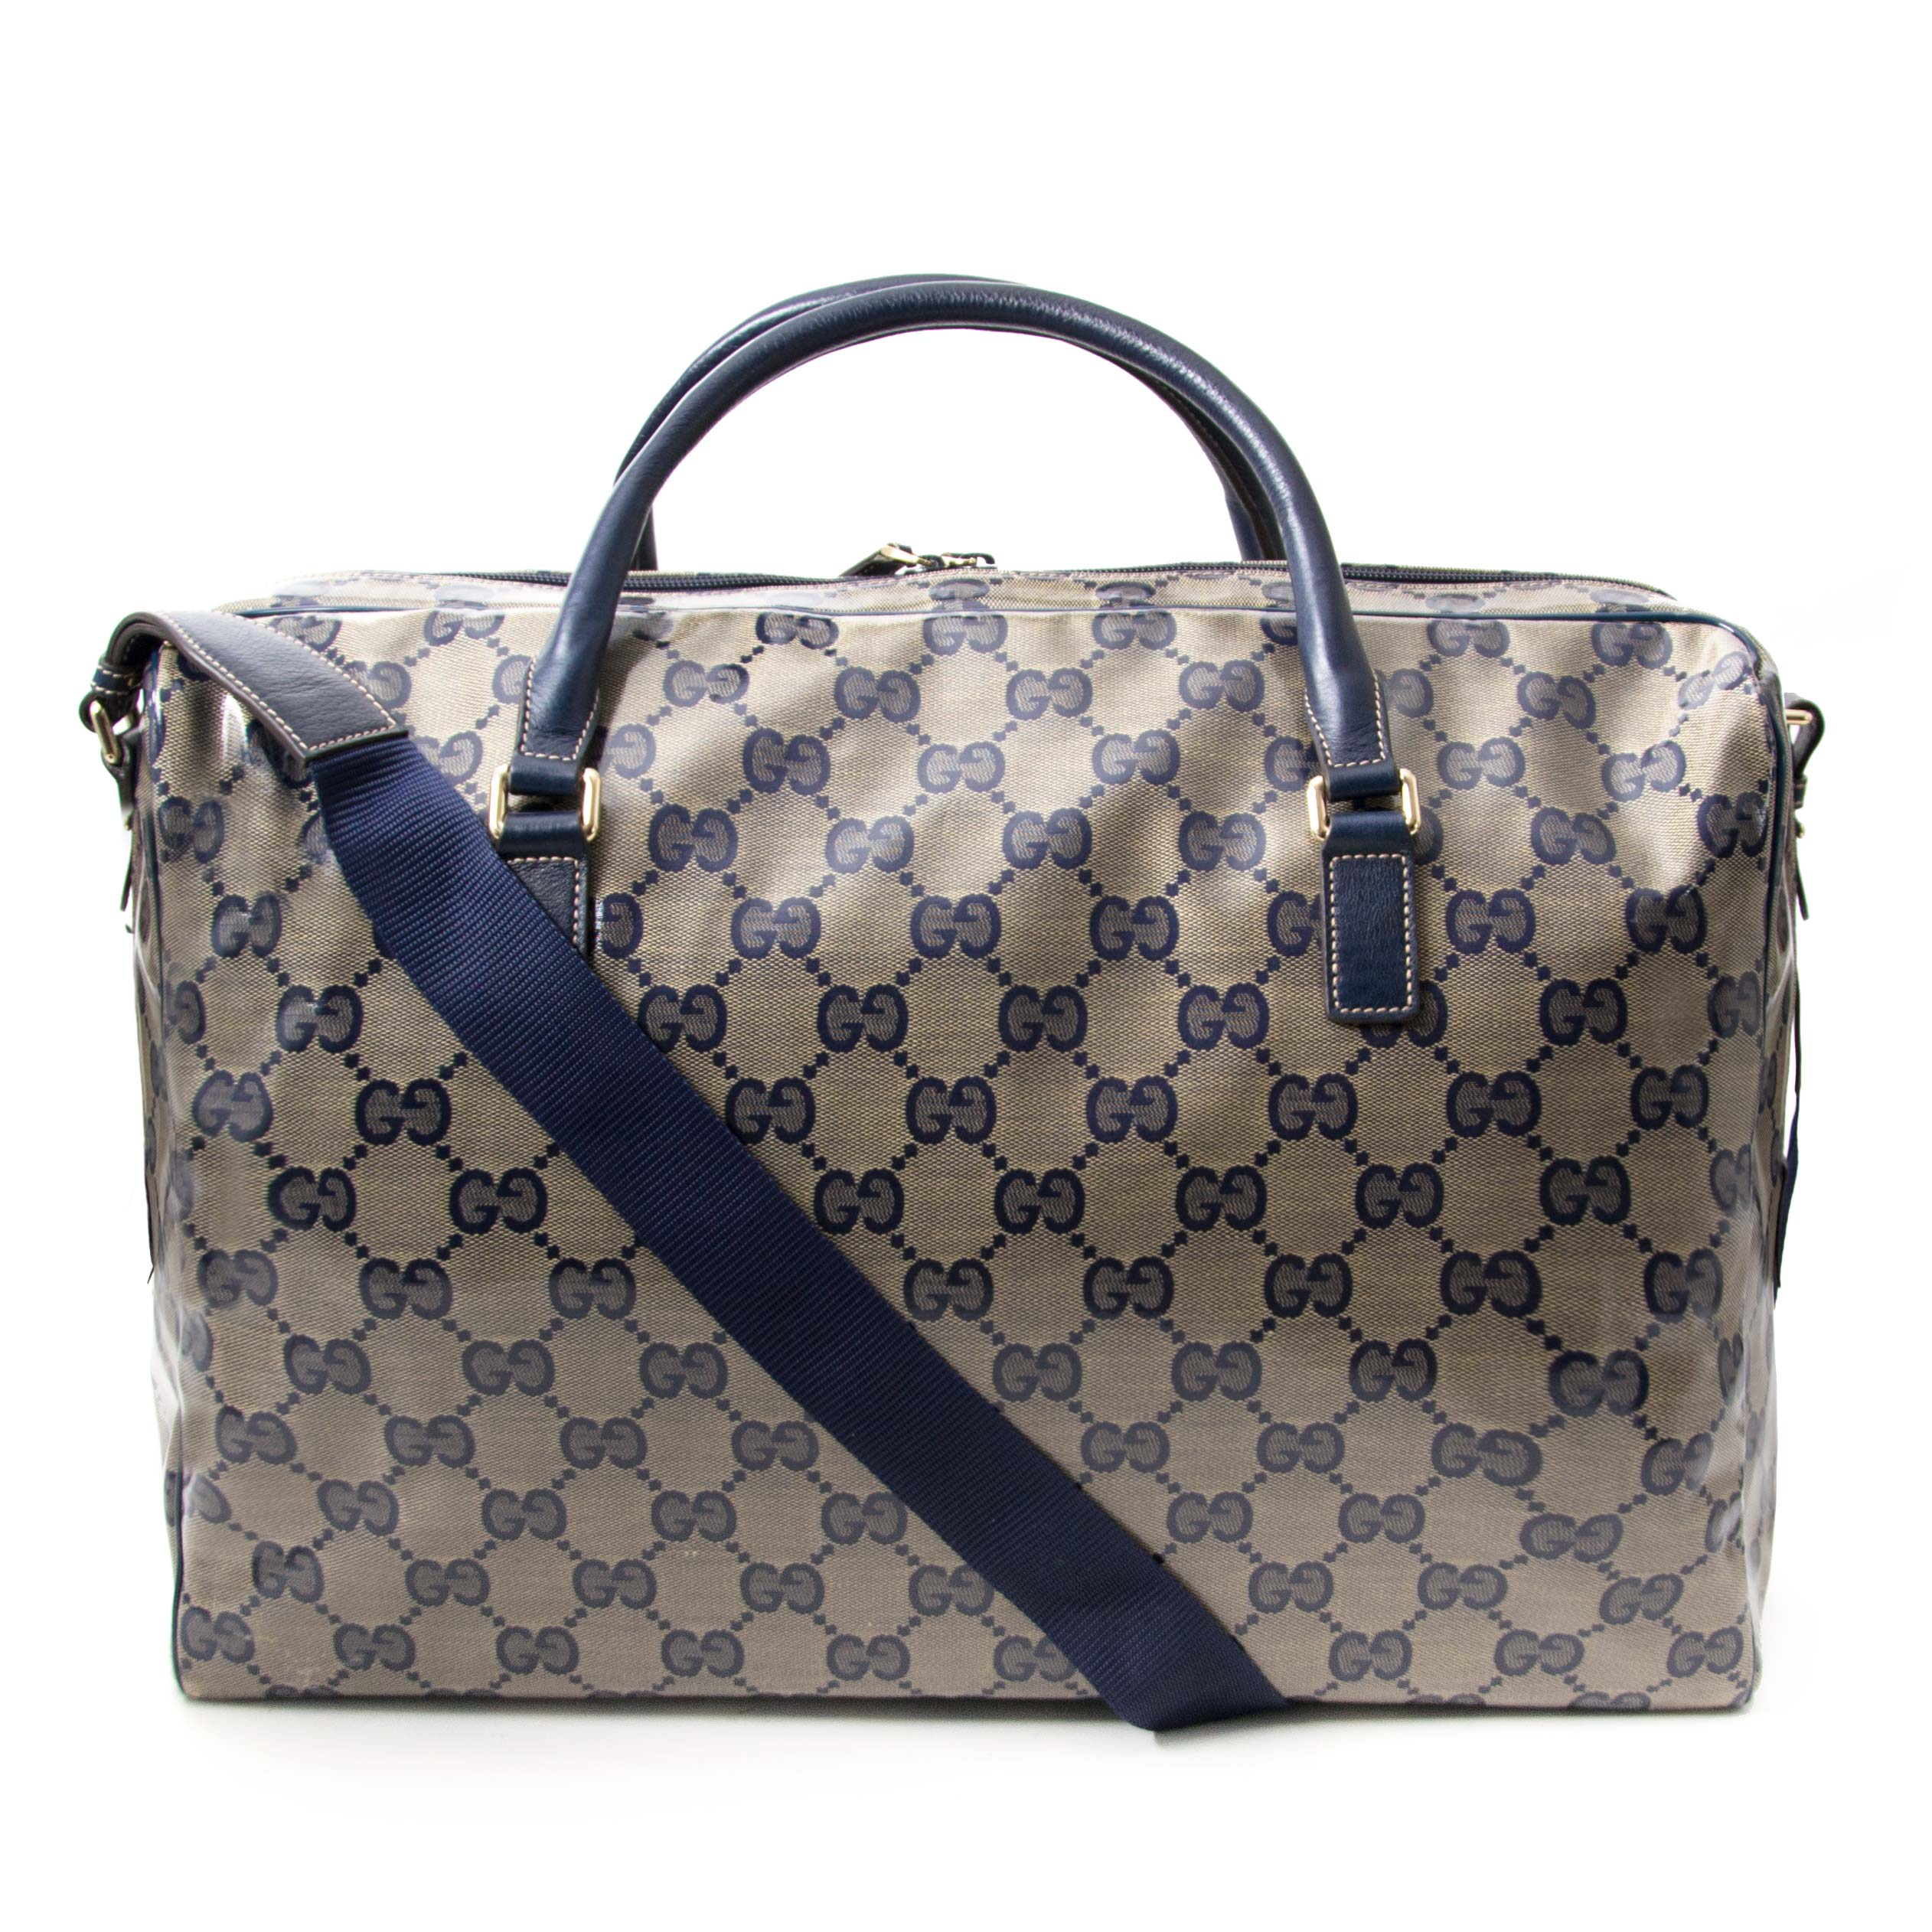 13e00bd817e2 ... Buy and sell your authentic Gucci GG Supreme Coated Monogram Canvas  Travel Bag for the best